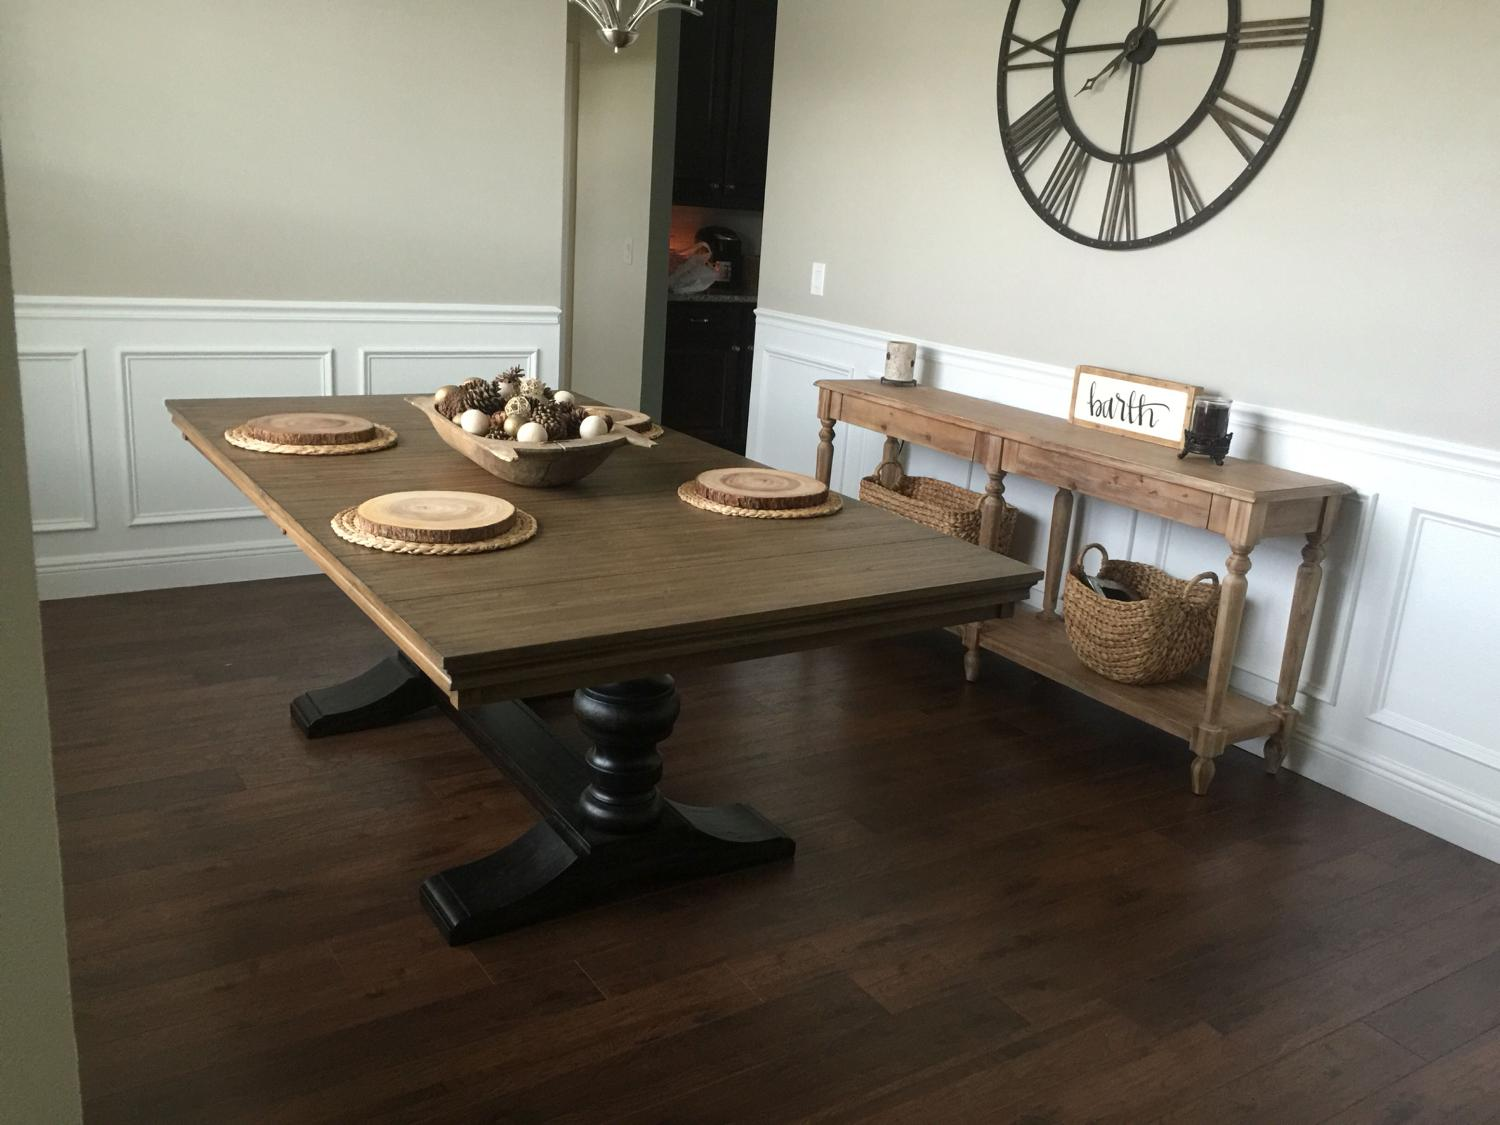 Tanshire Dining Room Table From Ashley Furniture